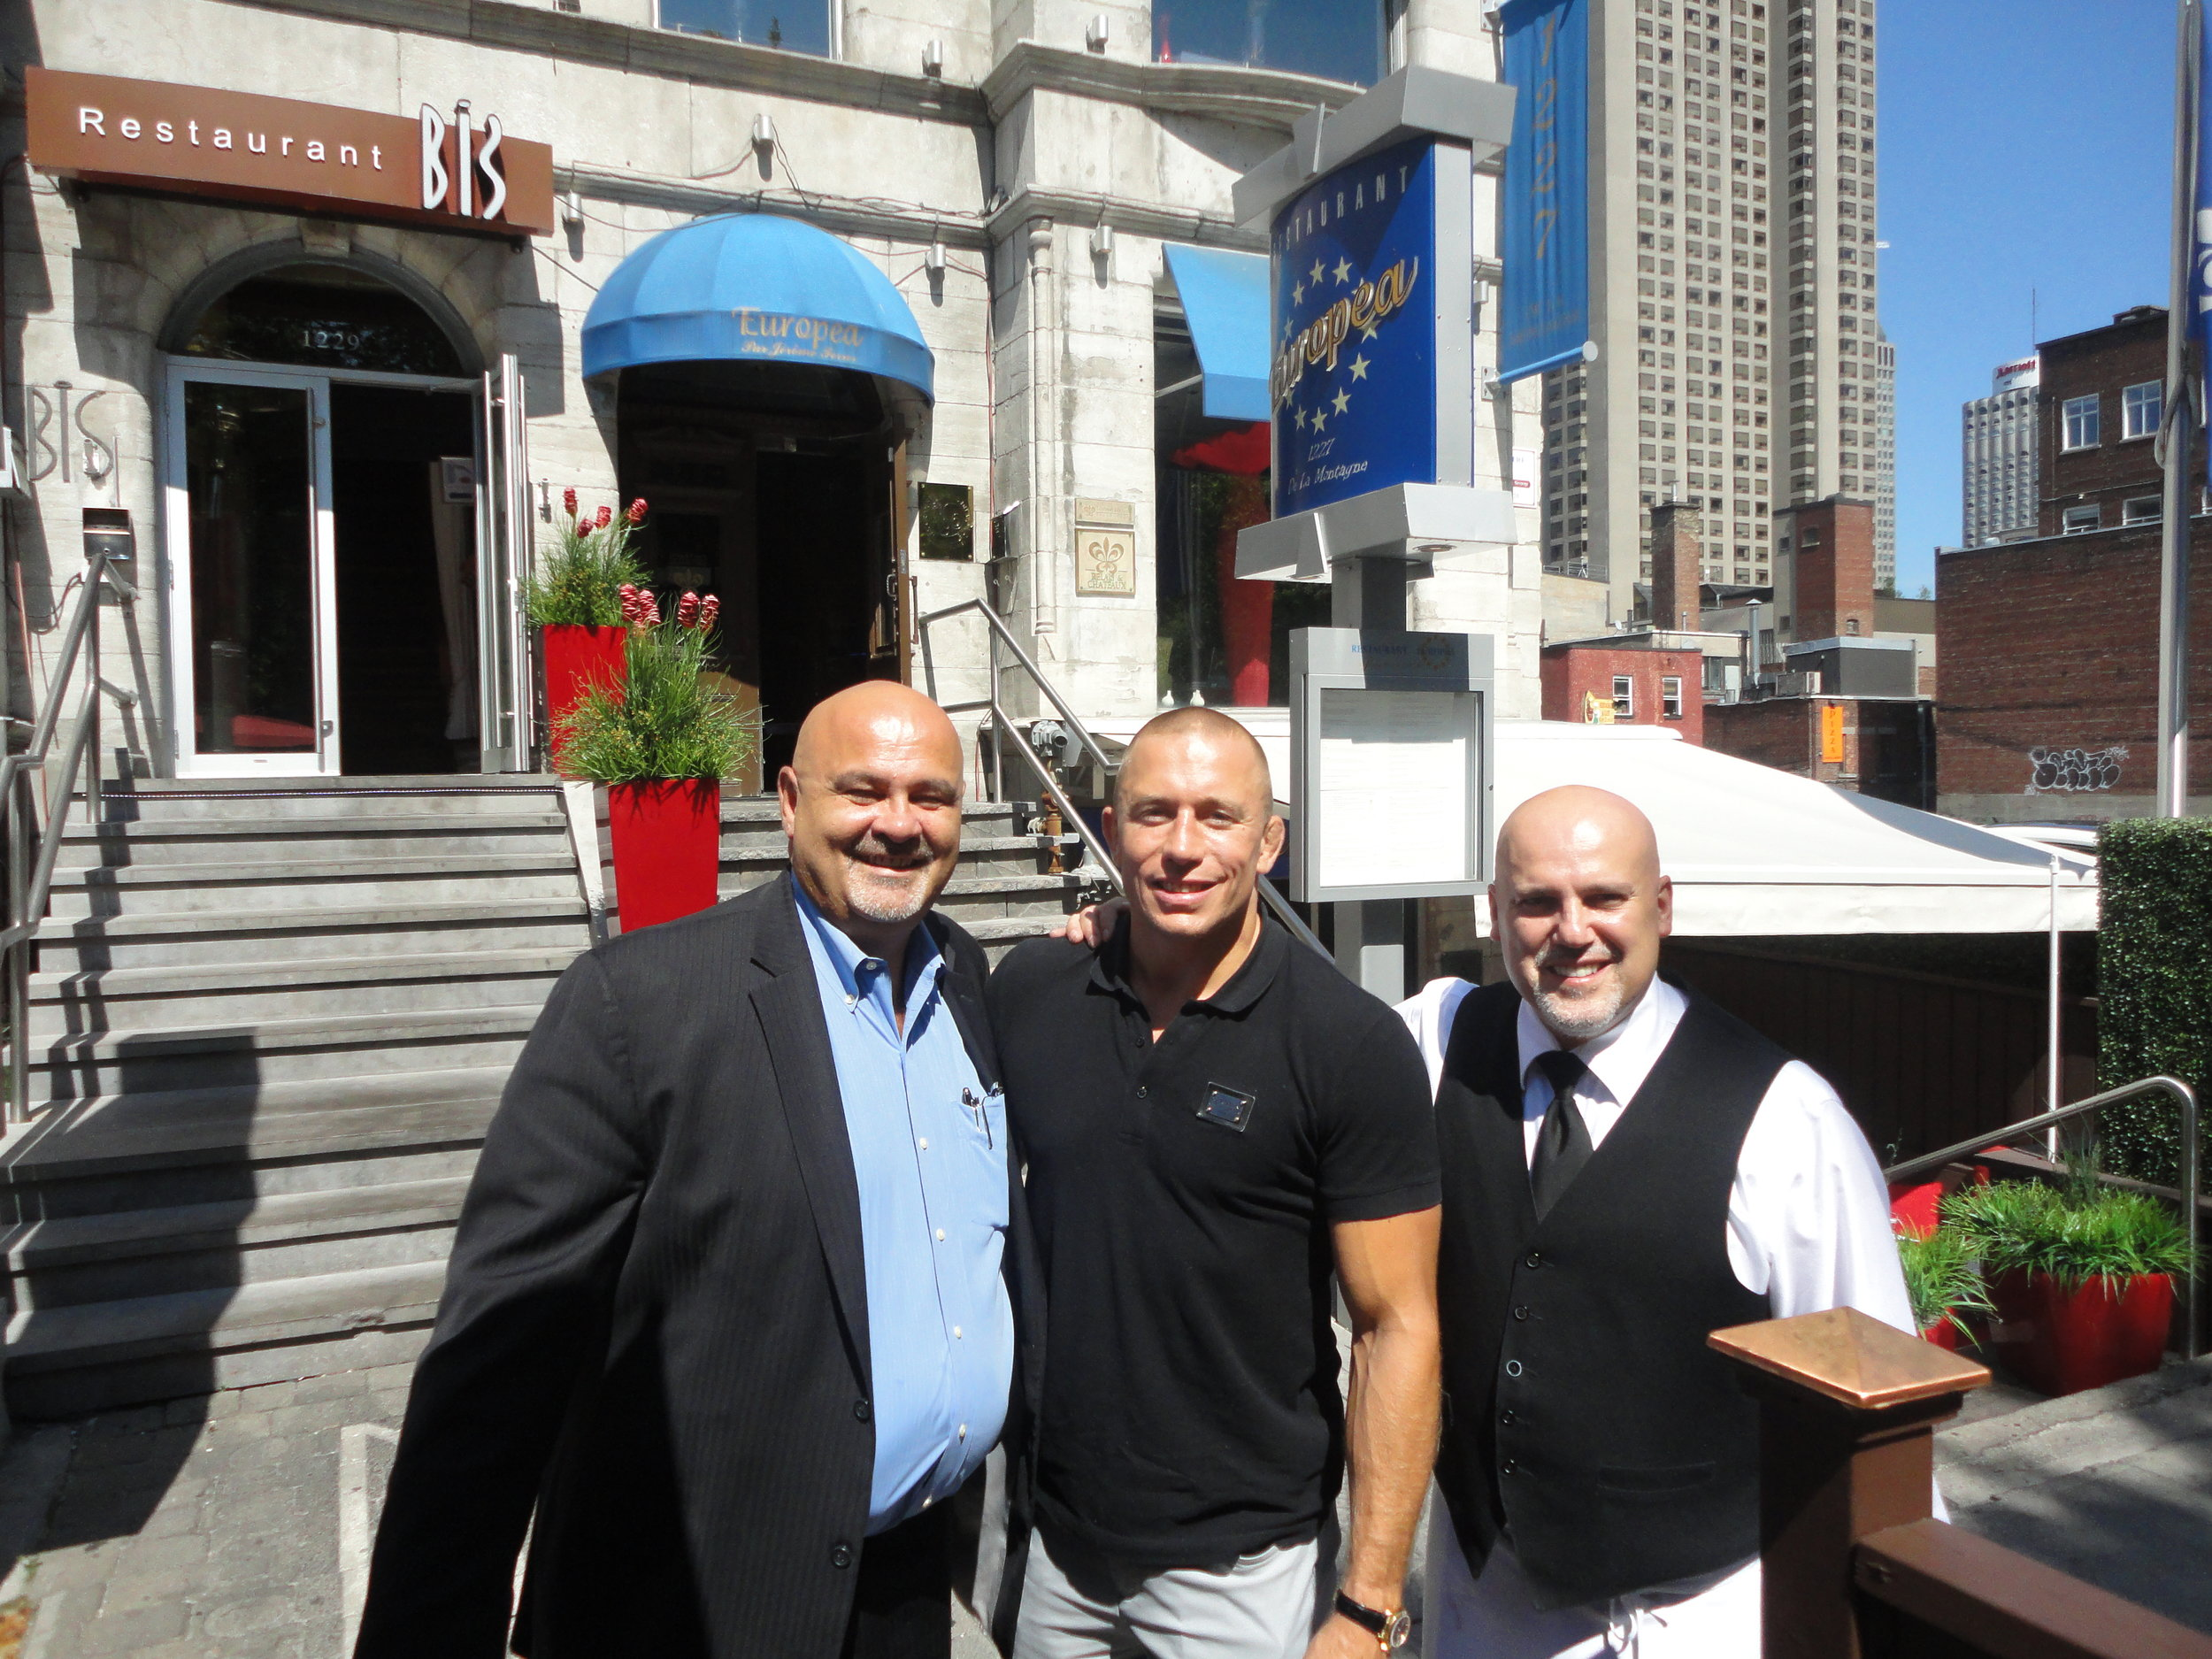 george saint pierre and marcello.JPG